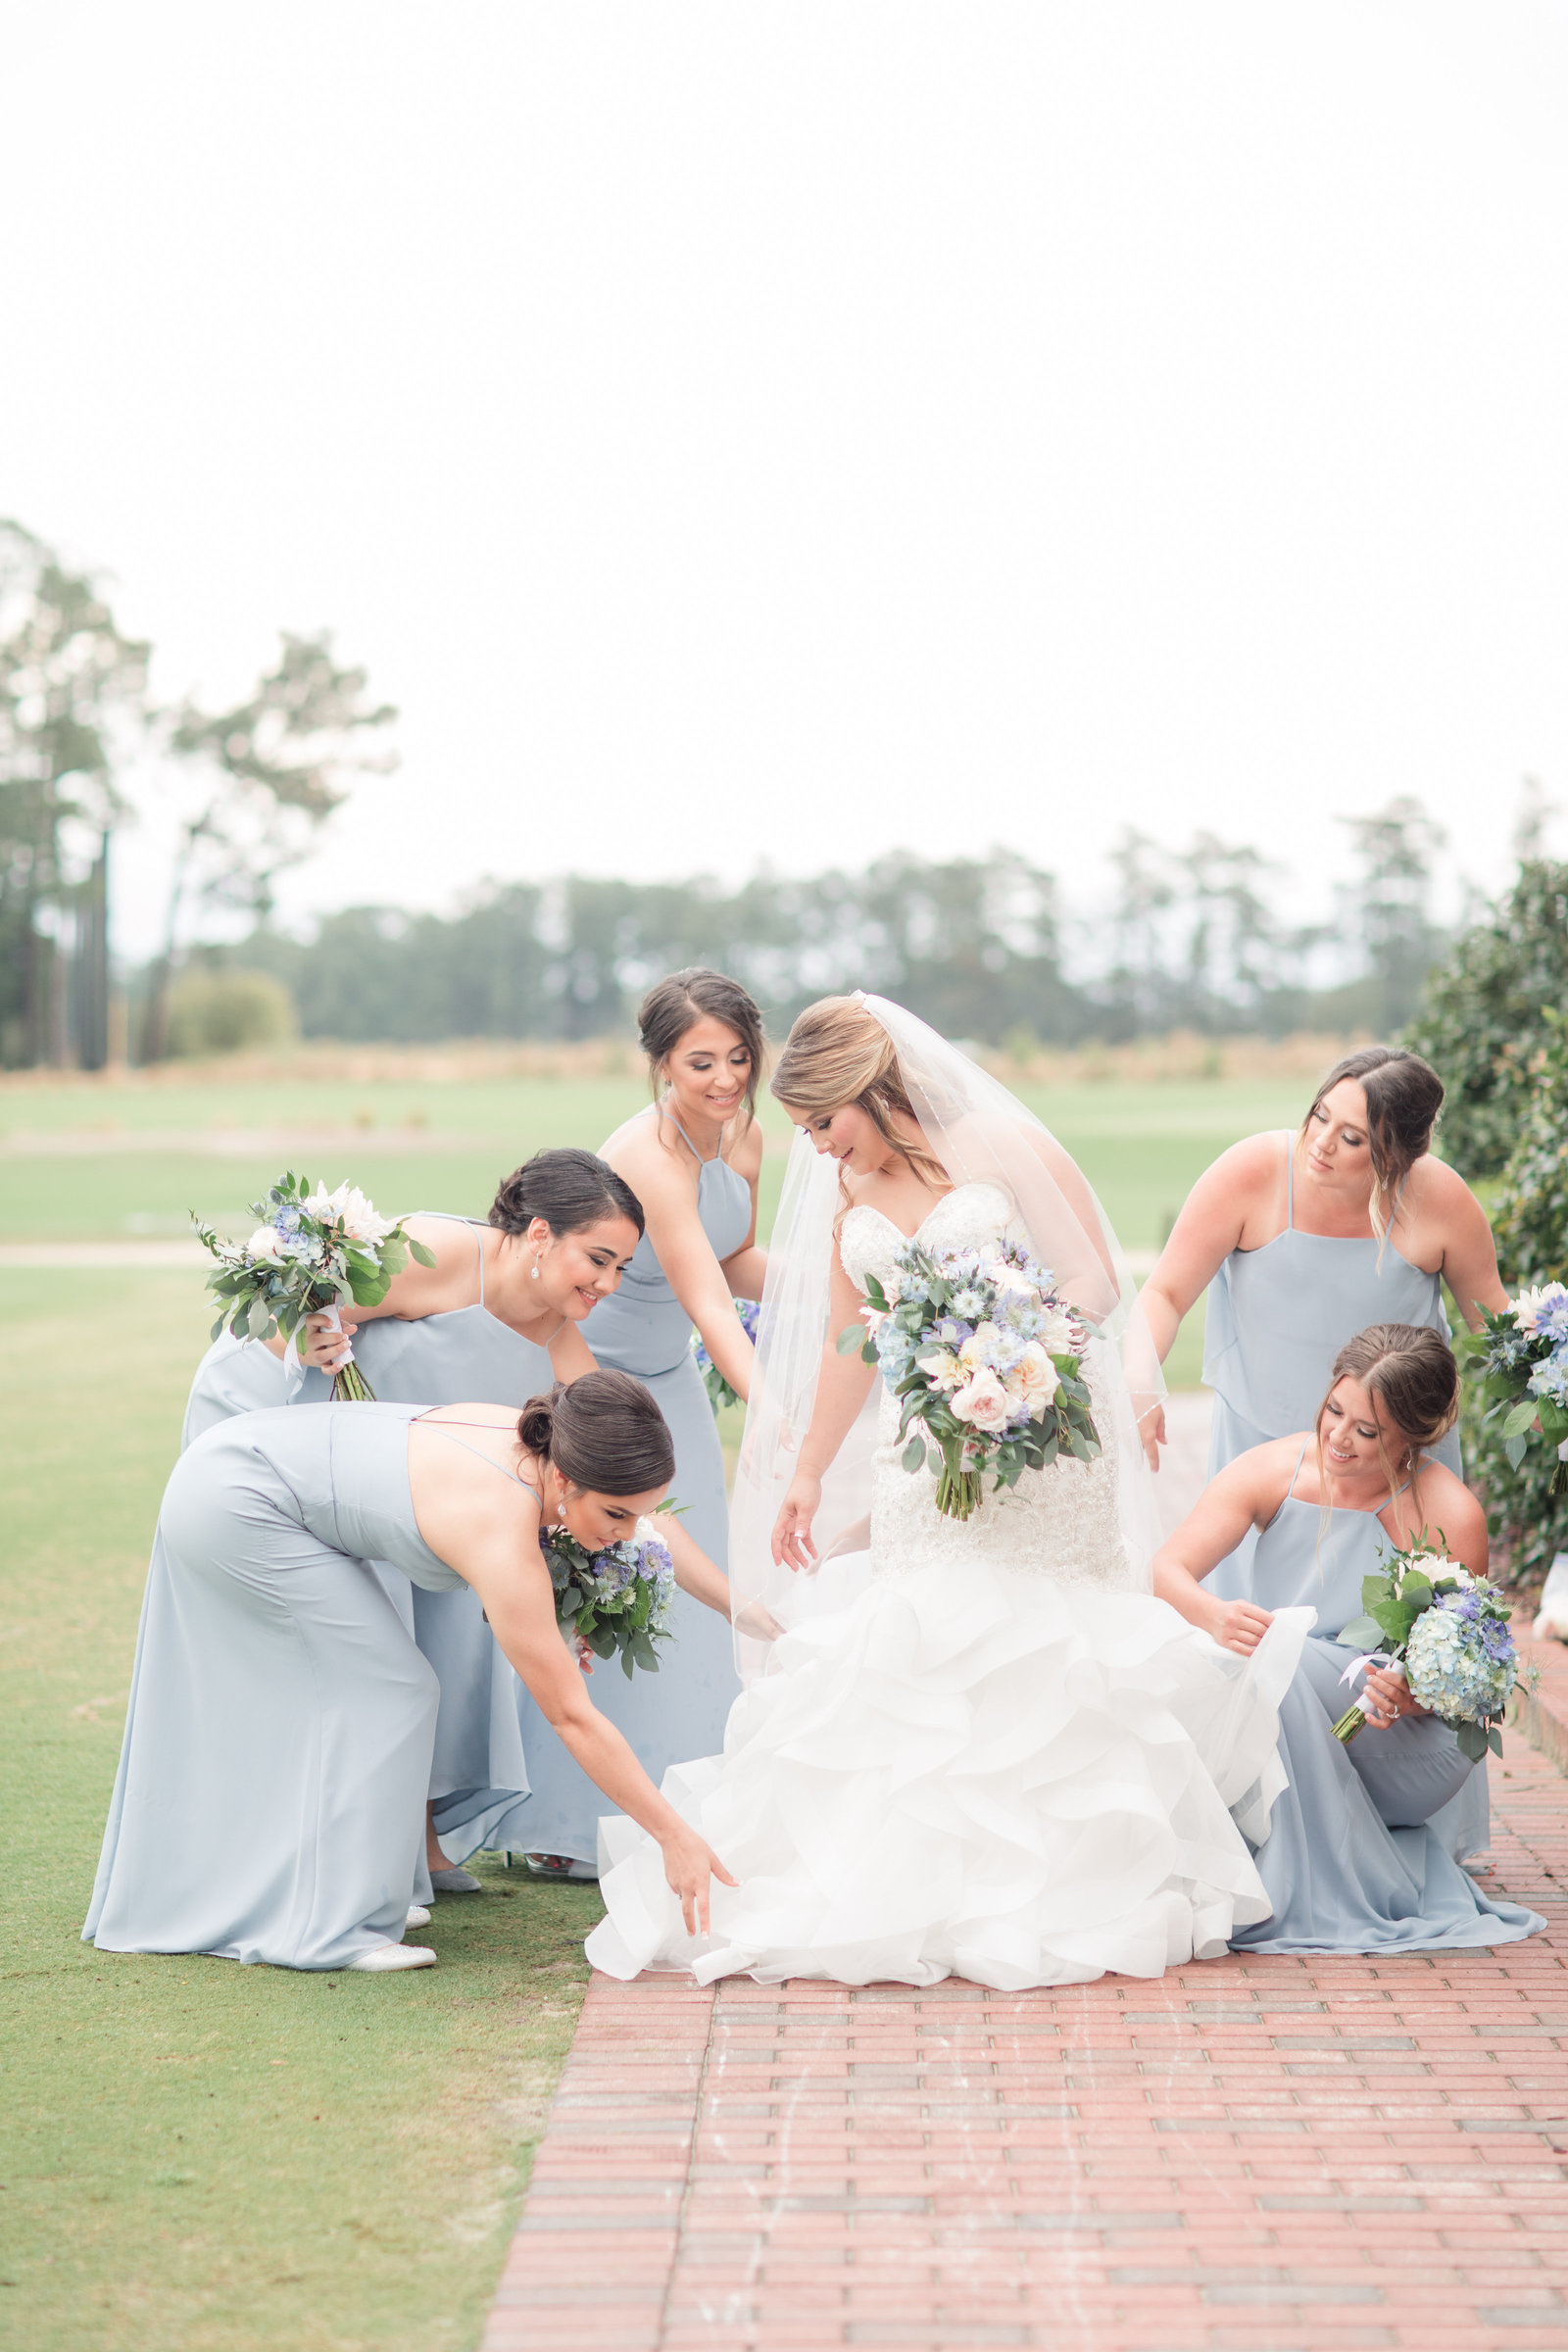 Jennifer_B_Photography-Pinehurst_Club-Pinehurst_NC-Wedding_Day-Caleb___Miranda-JB_Favs-2019-0118